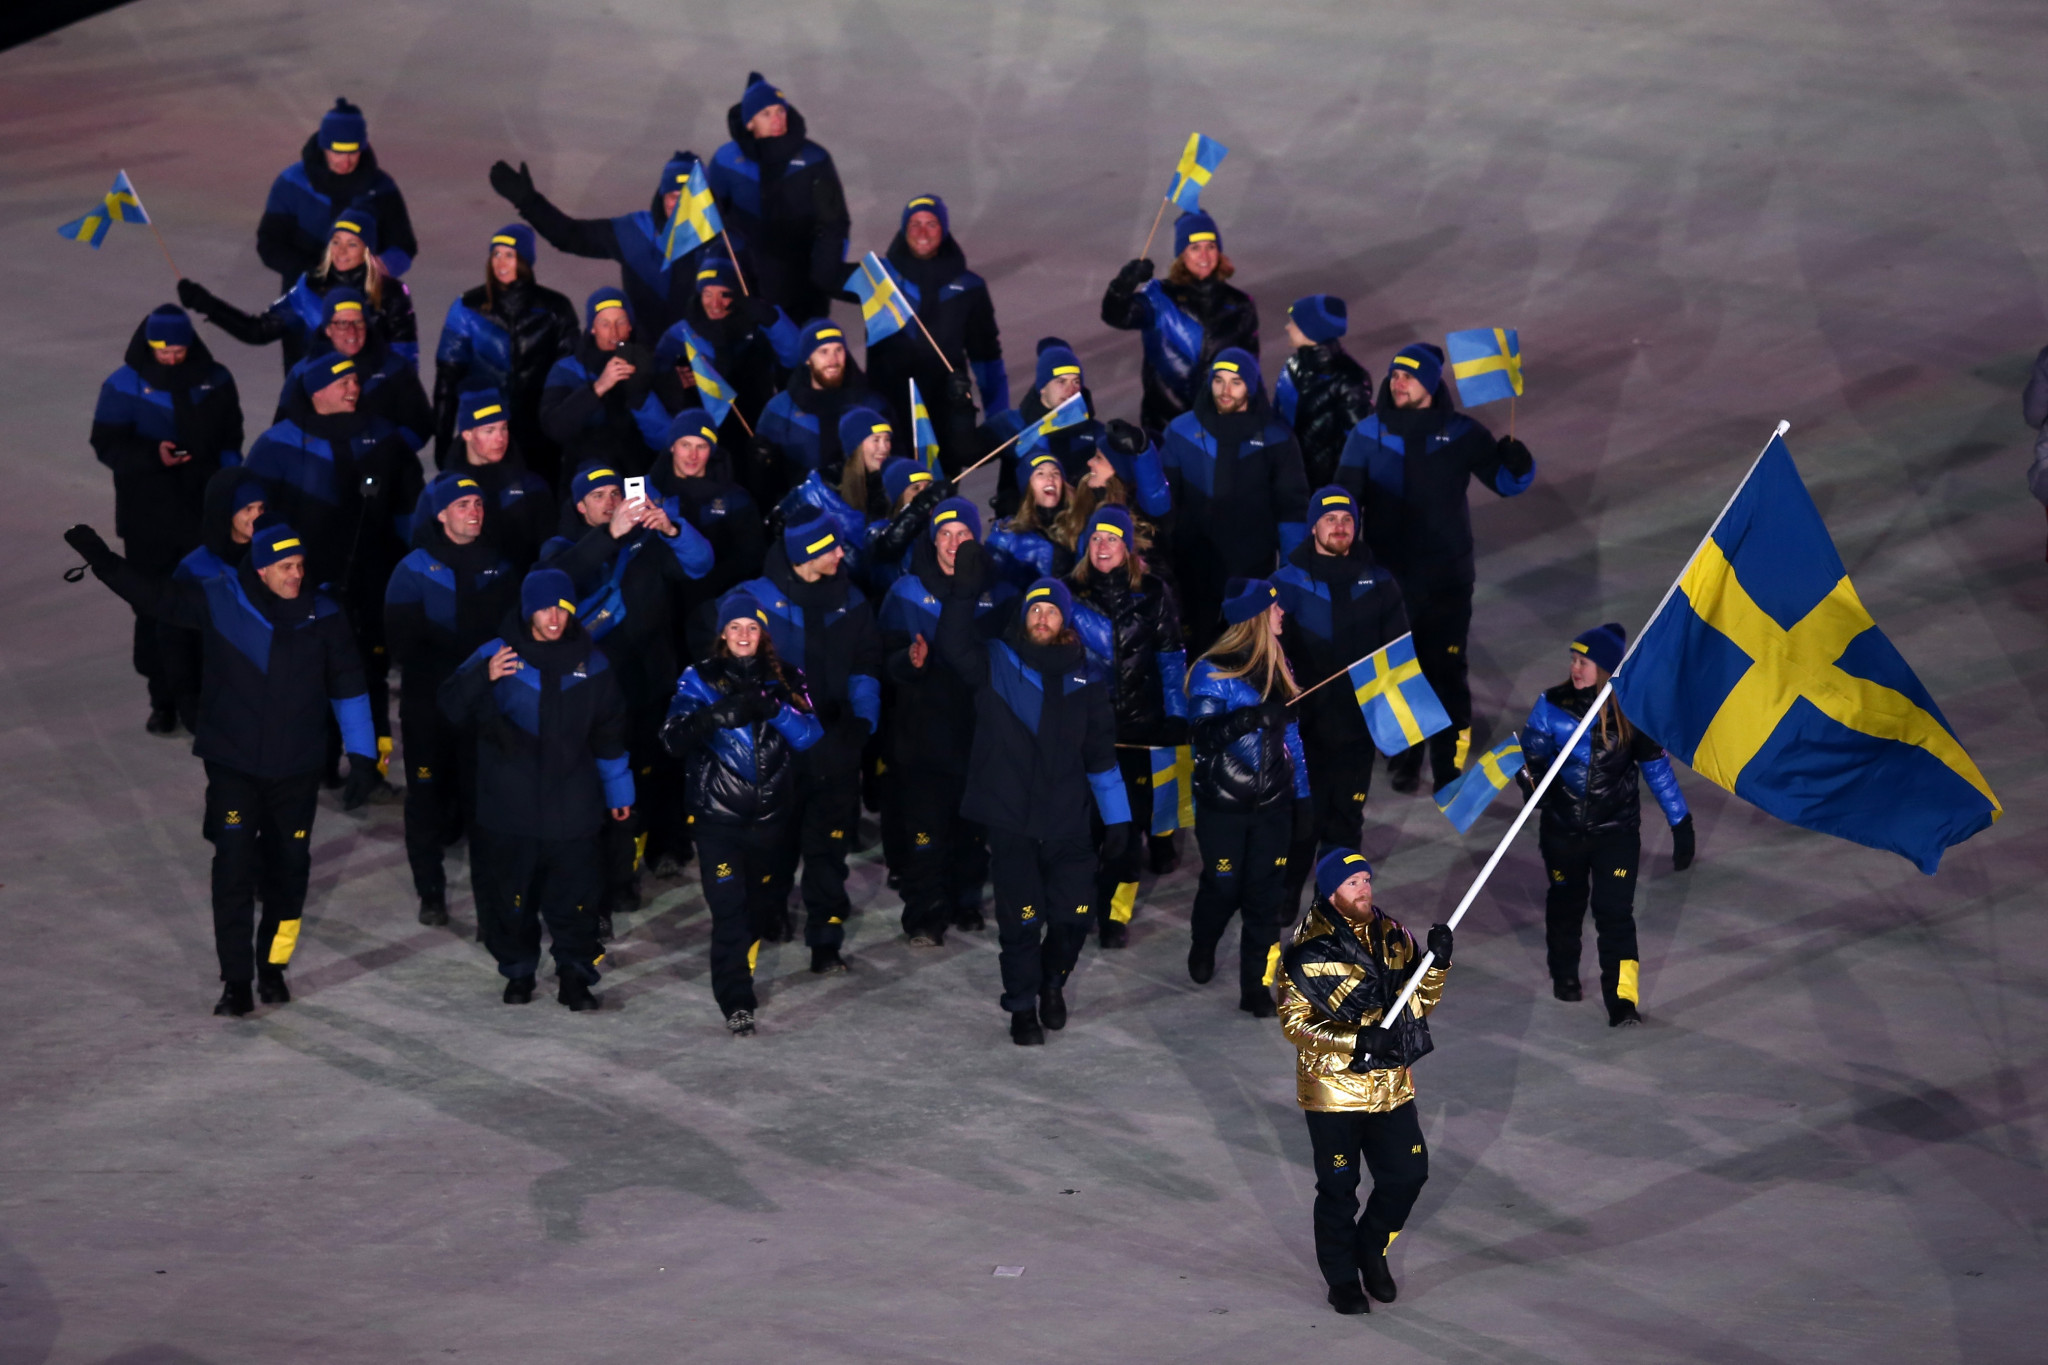 Sweden has announced investment ahead of the 2026 and 2030 Winter Olympics ©Getty Images